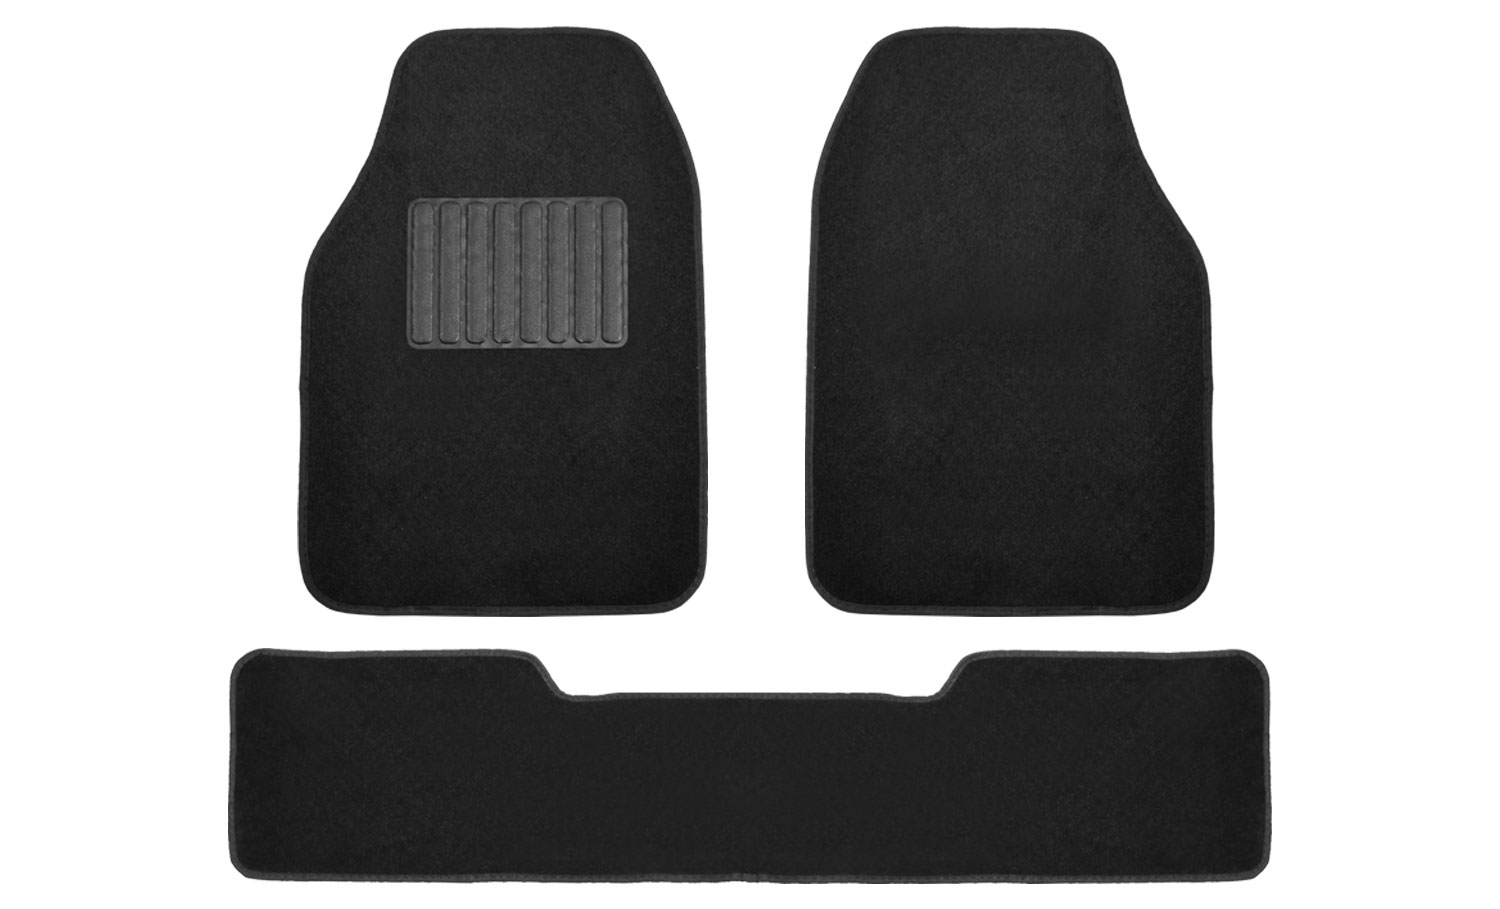 PU Leather Car Seat Covers For Auto Black White 5